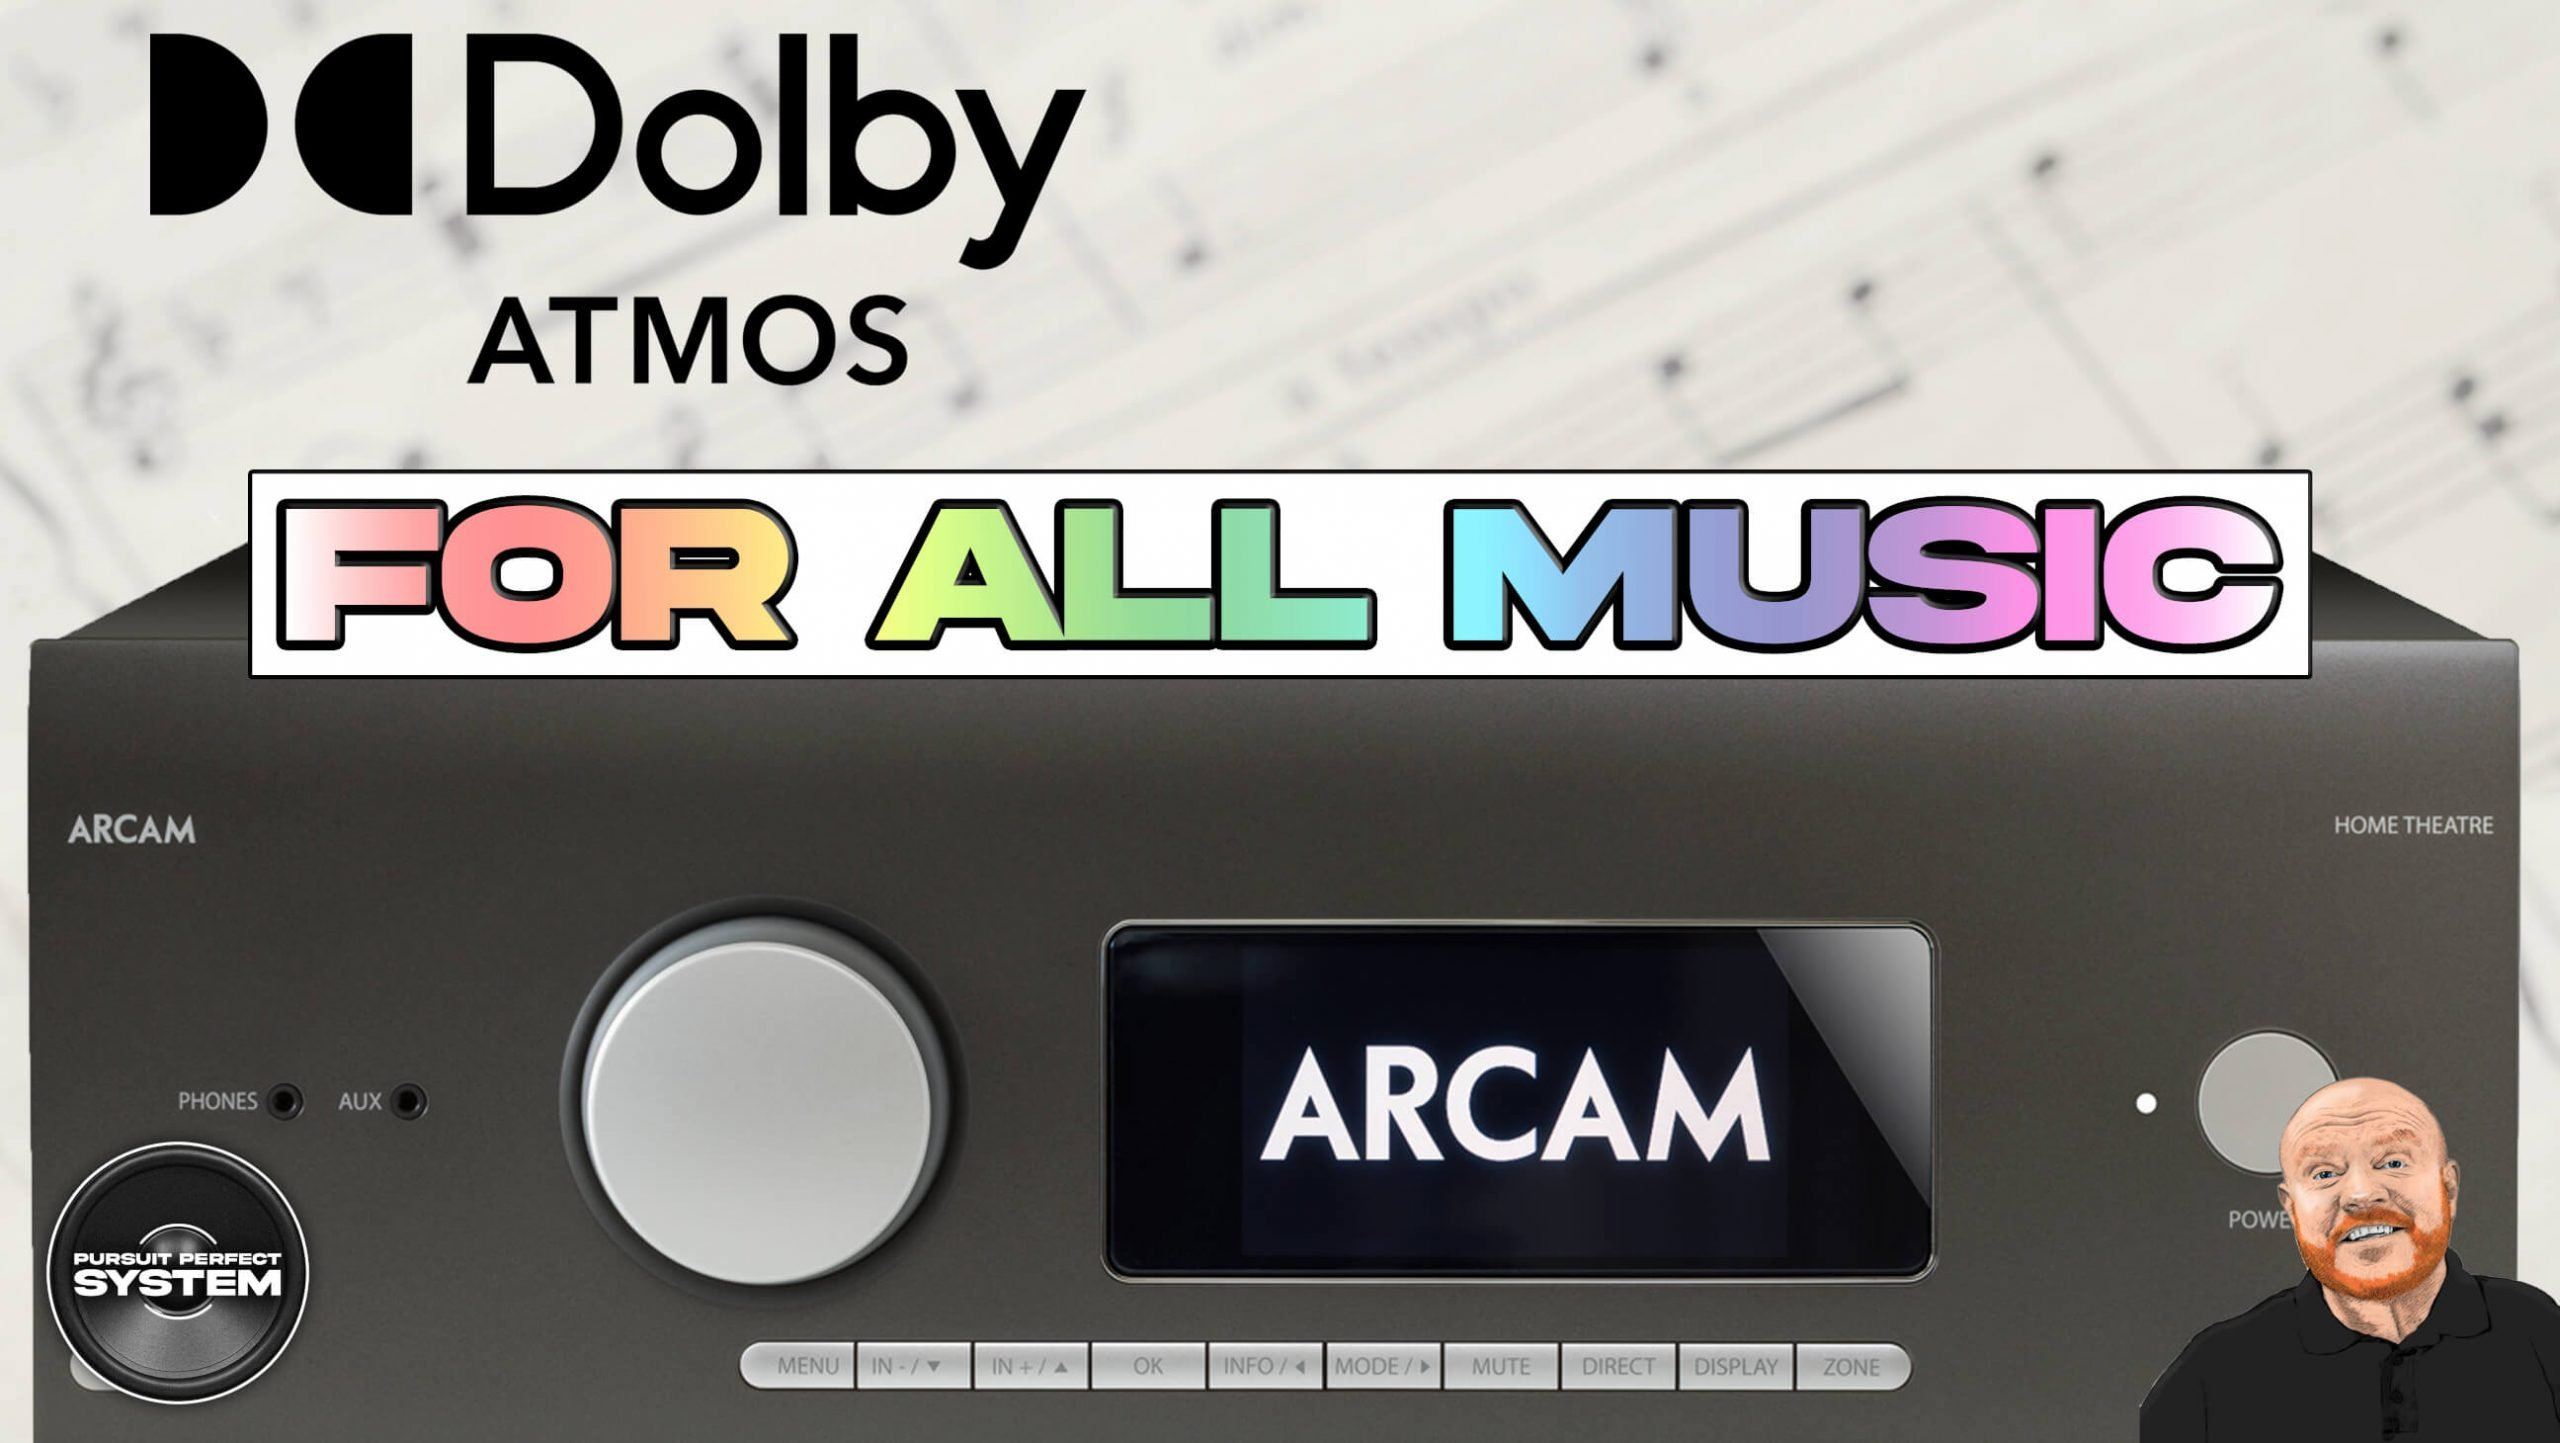 apple music spatial audio dolby atmos for all music arcam jbl website 1